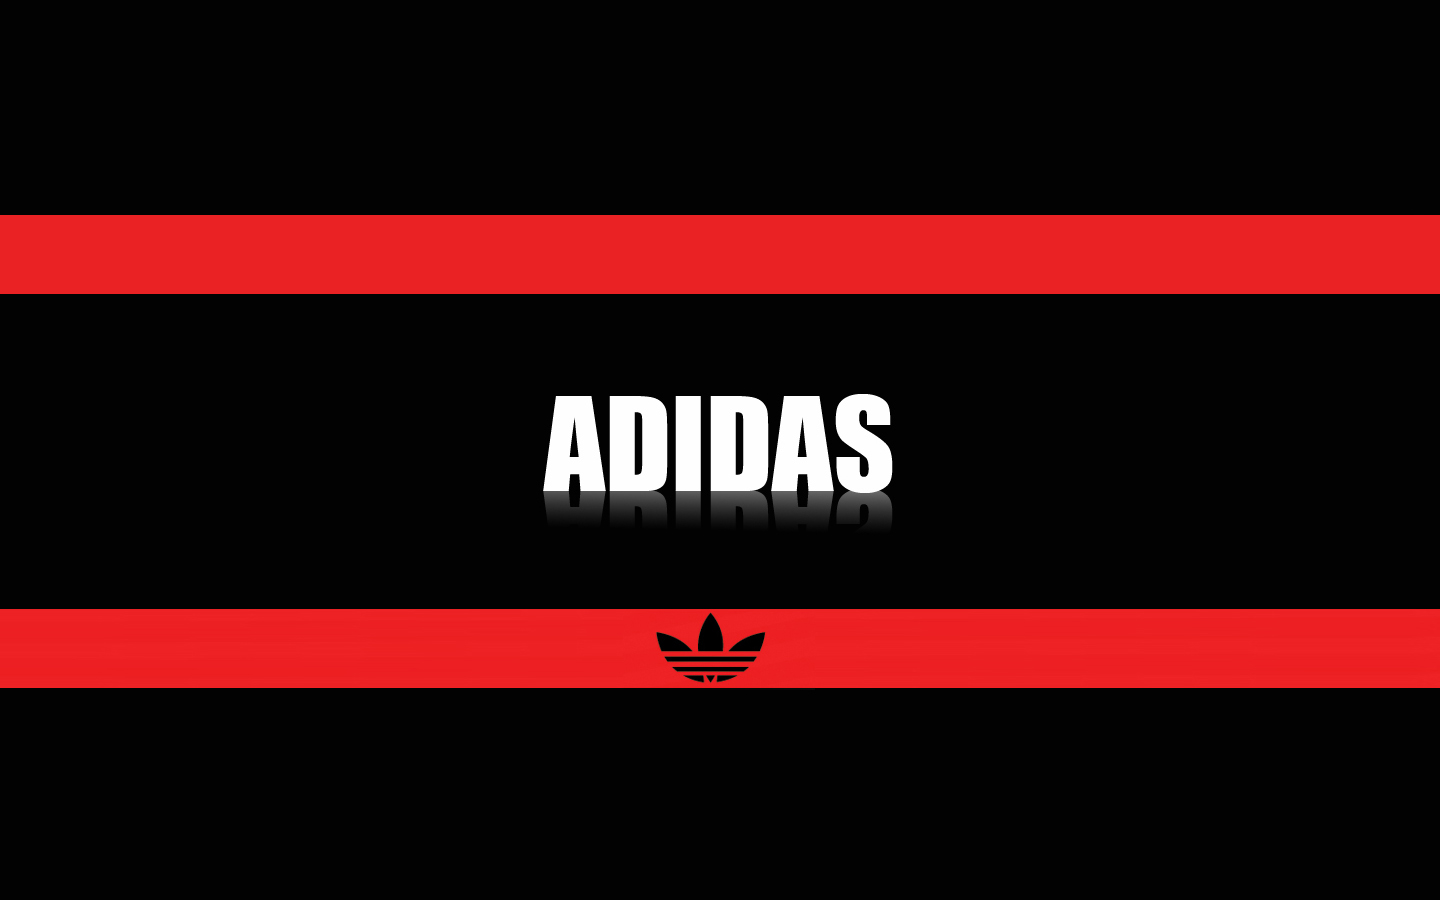 Adidas Logo HD Wallpapers Download Wallpapers in HD for your 1440x900